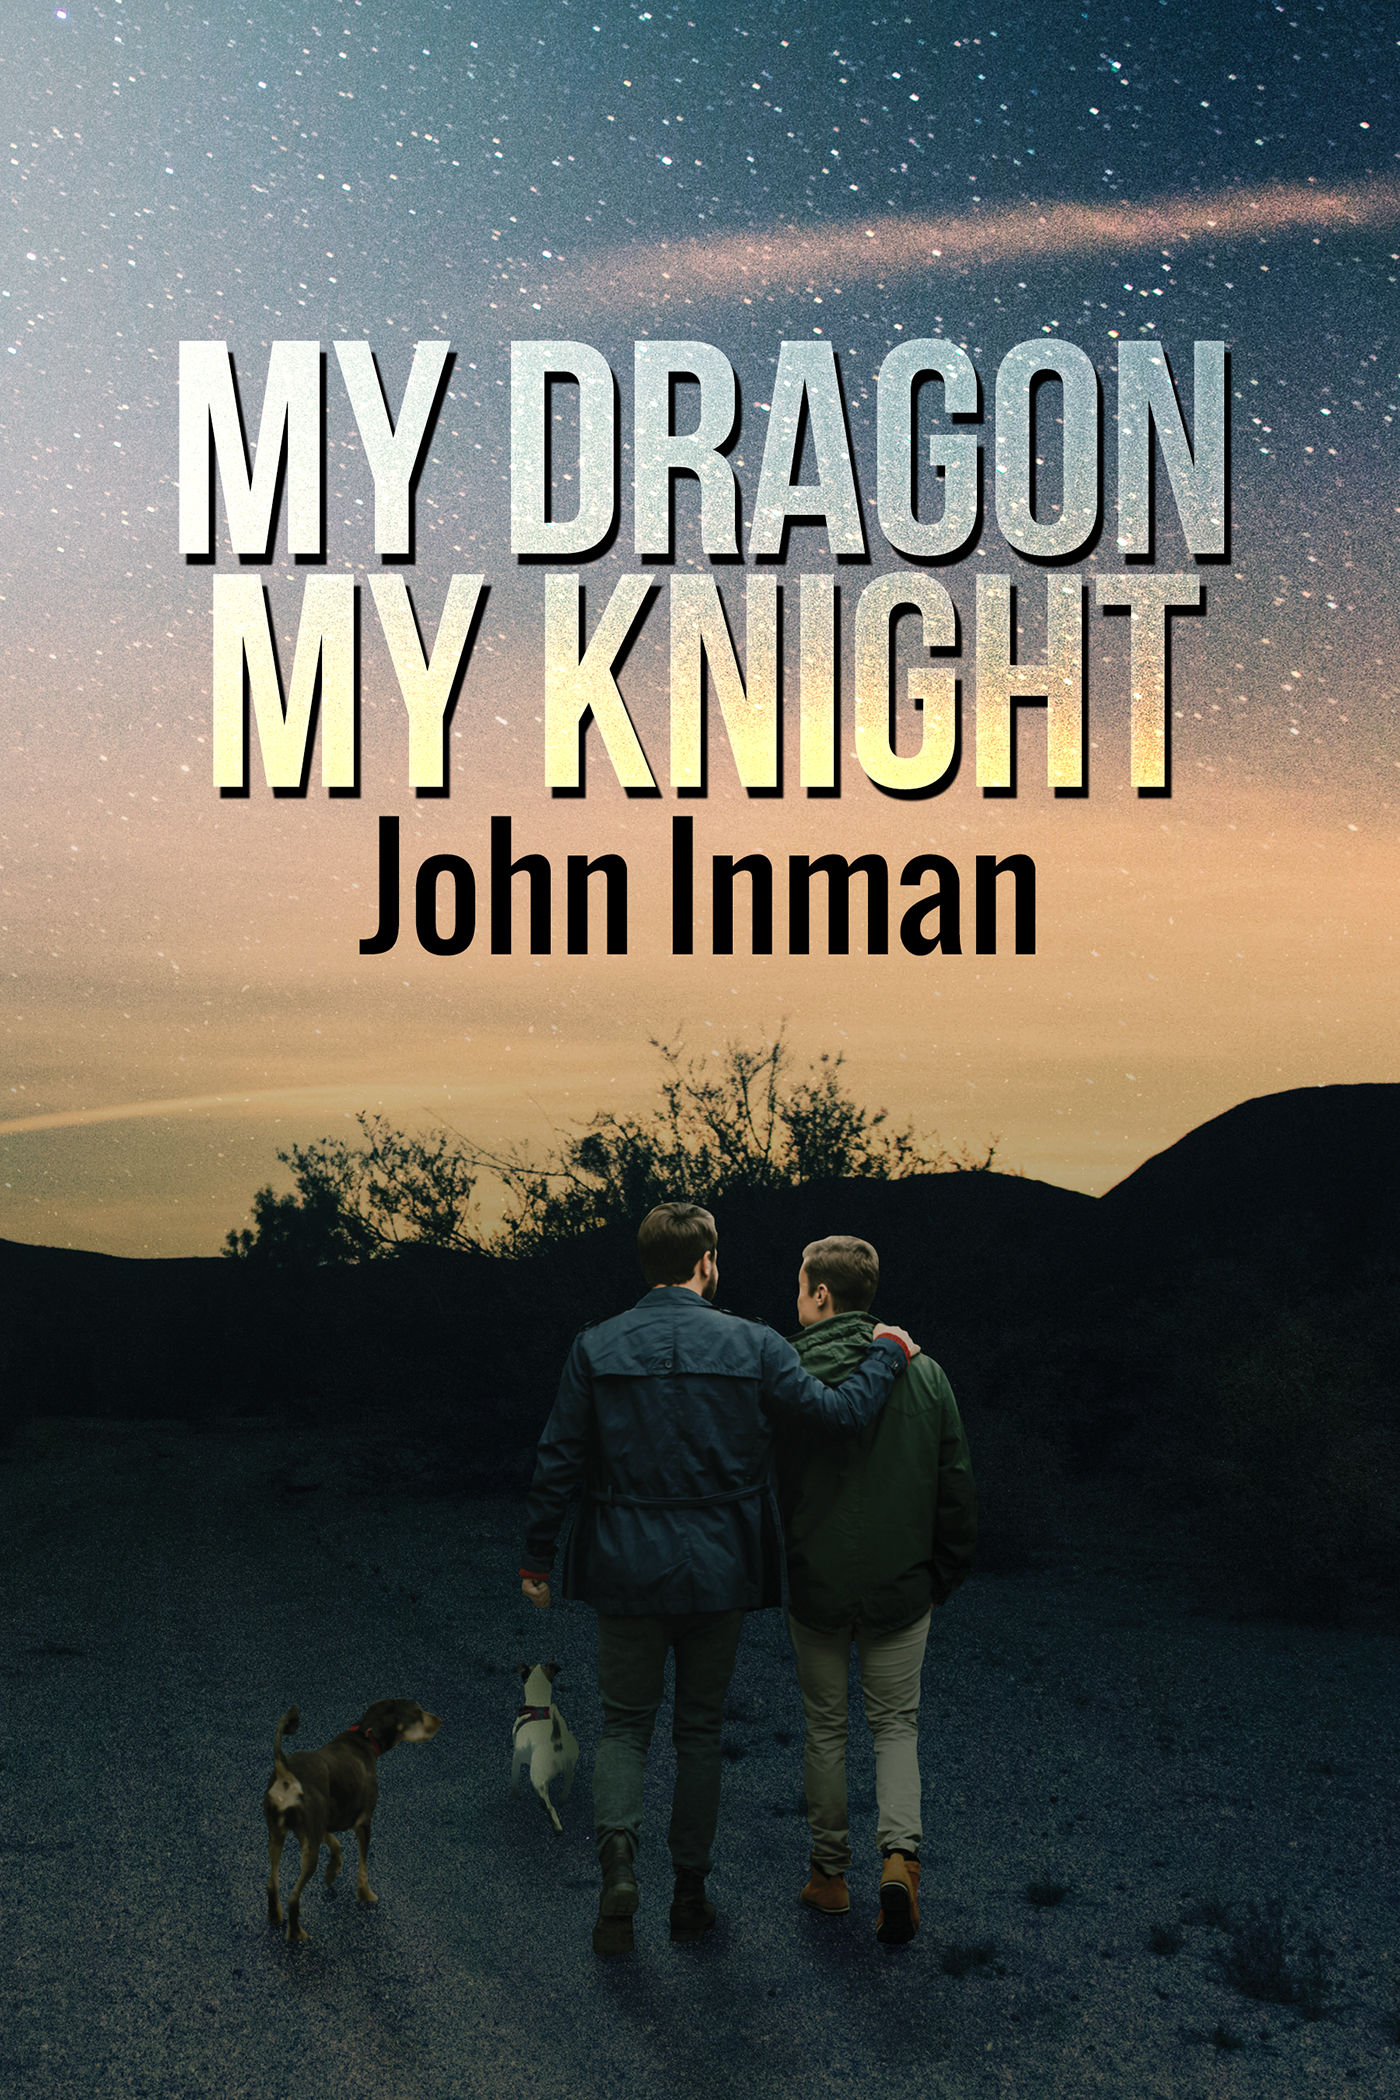 Review: My Dragon, My Knight by John Inman